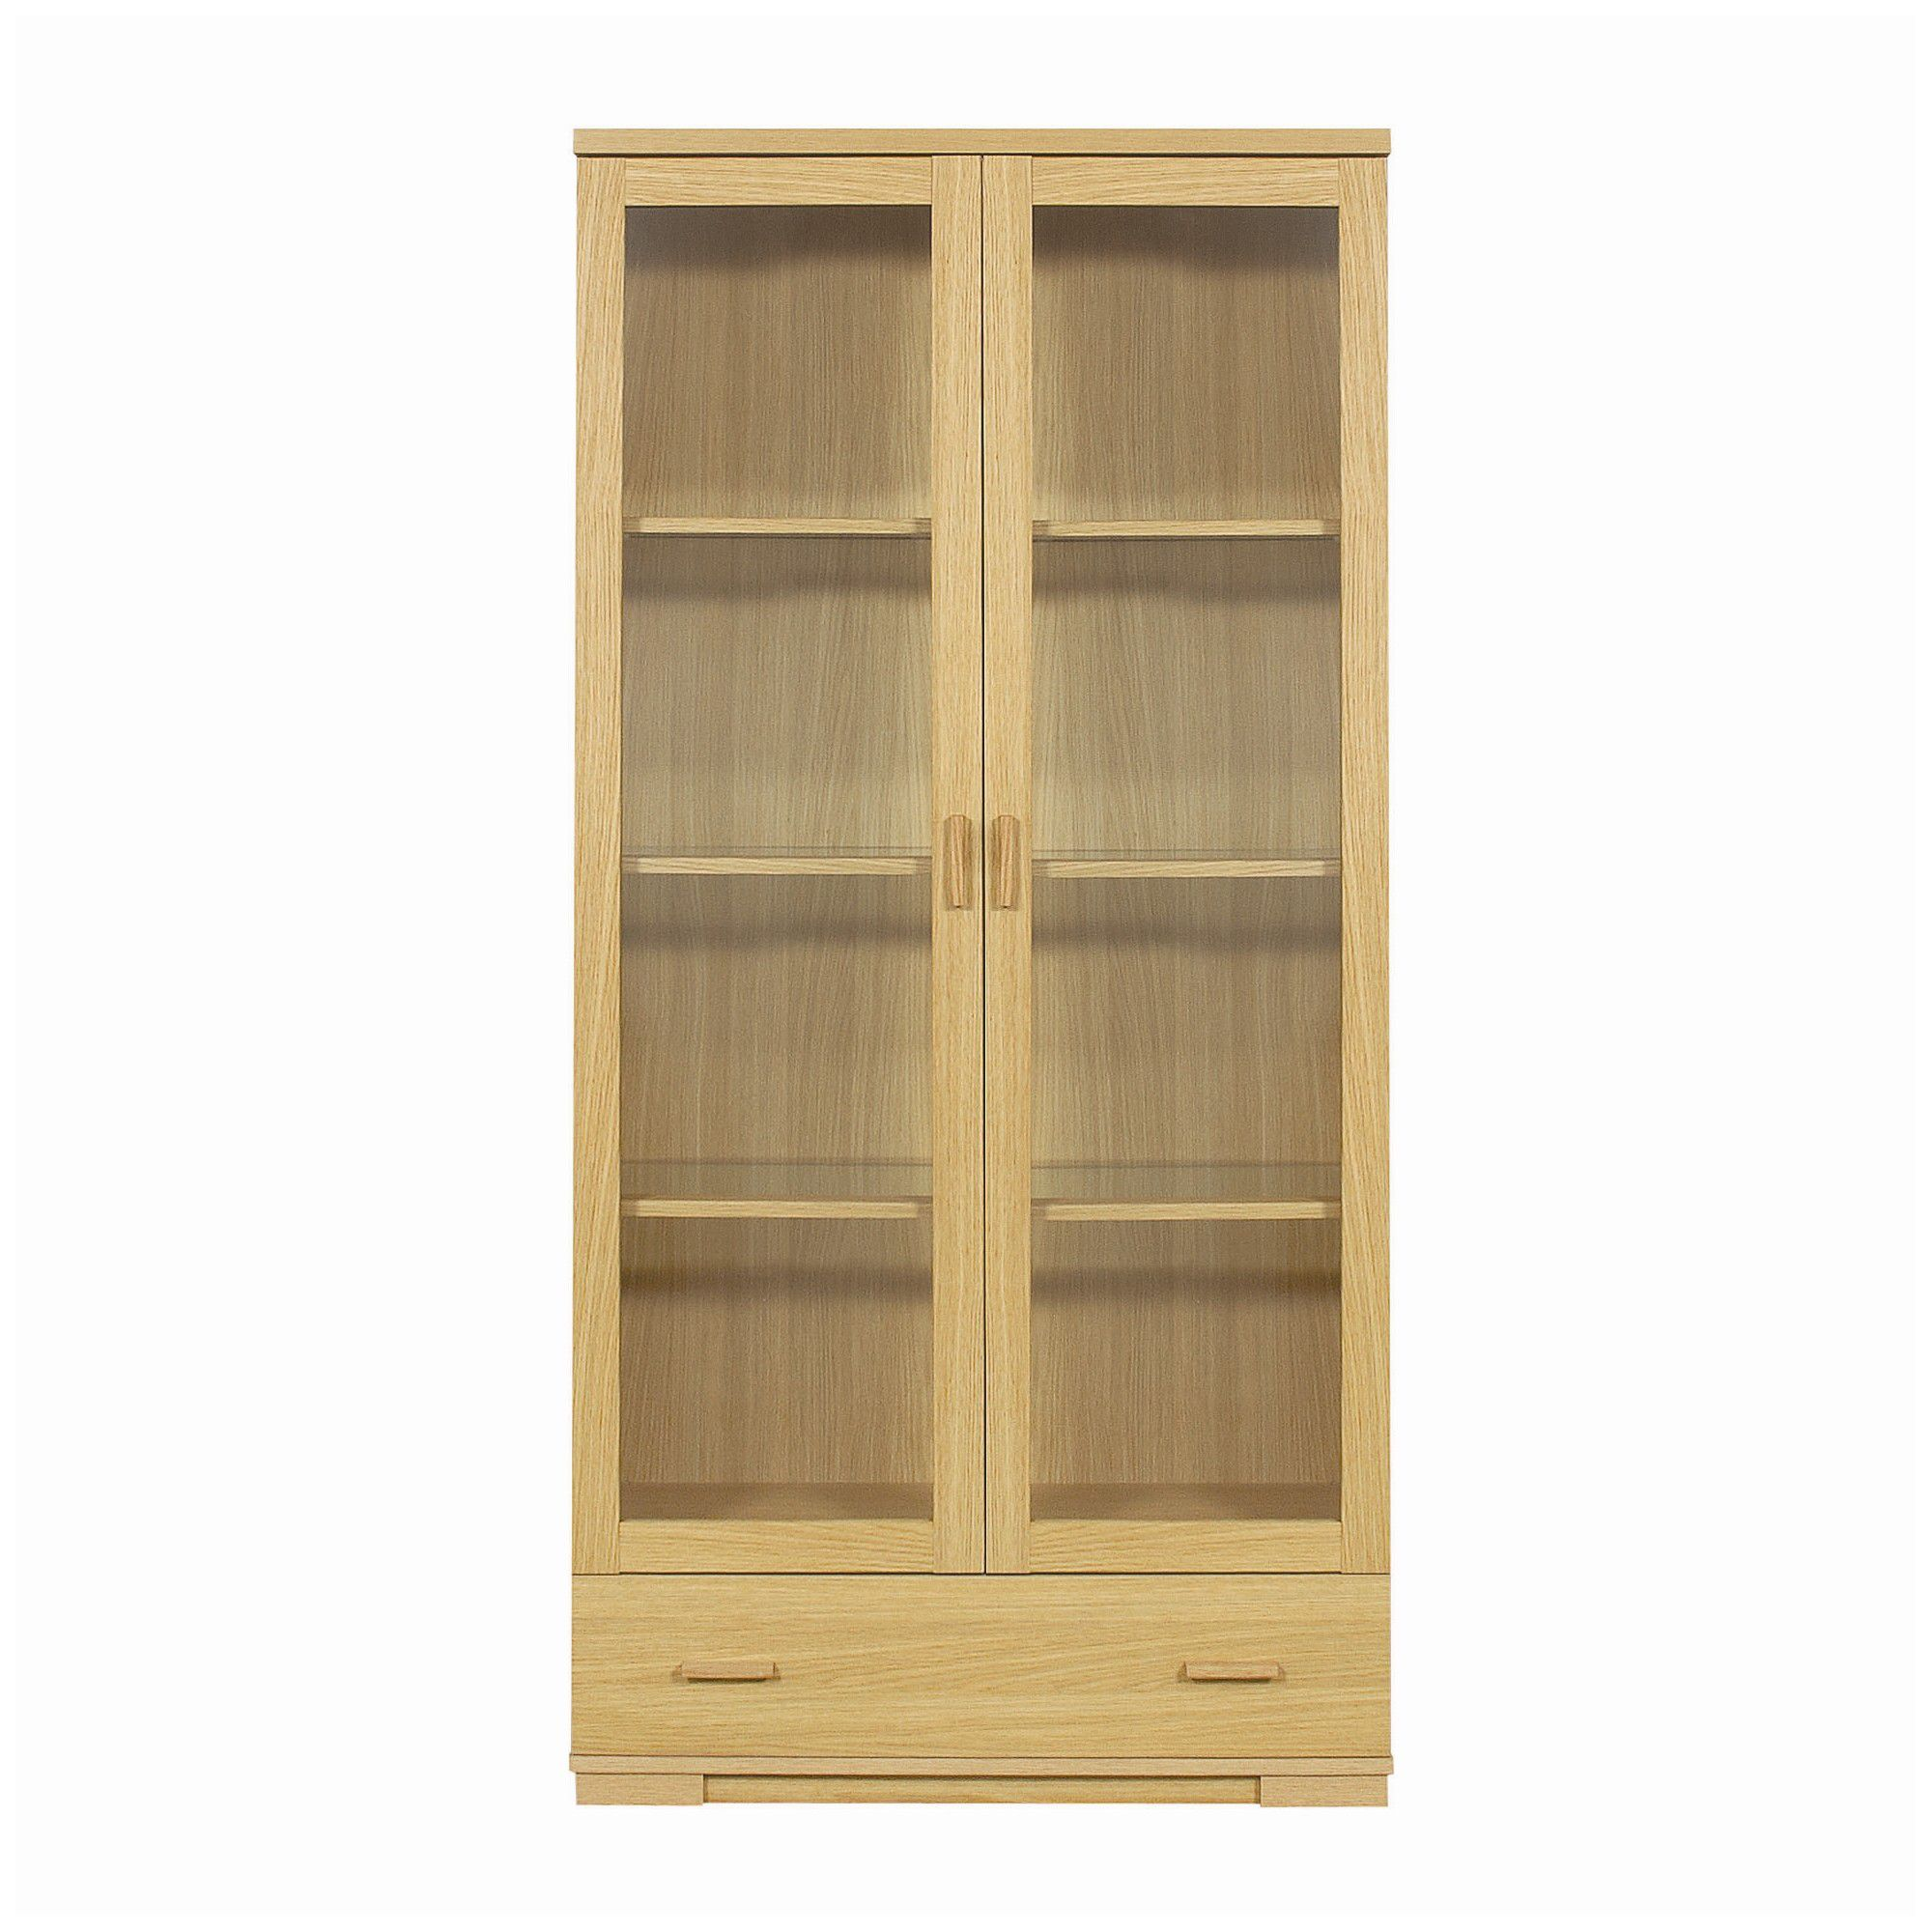 Caxton Huxley 2 Glazed Door / 1 Drawer Display Cabinet in Light Oak at Tesco Direct